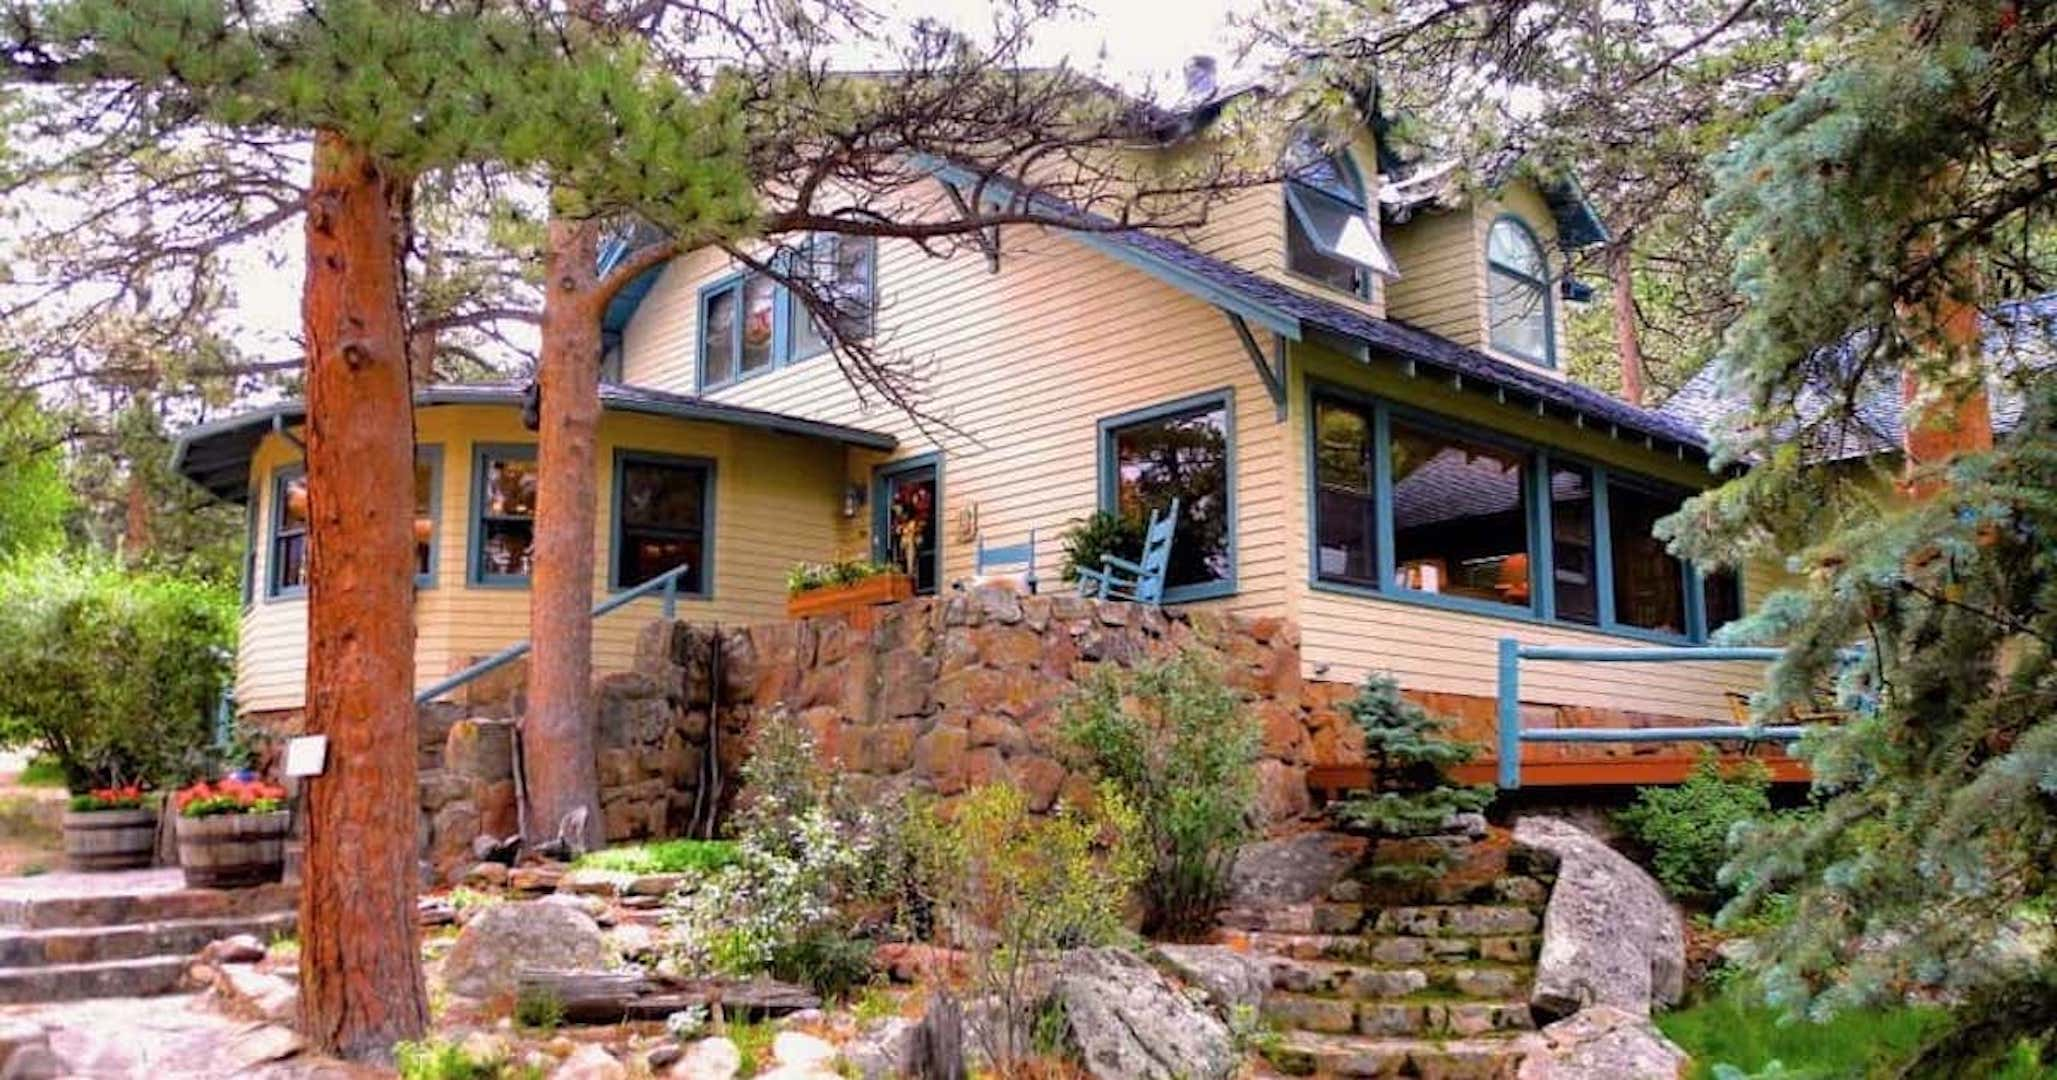 A tree in front of a house at Estes Park Bed and Breakfast.